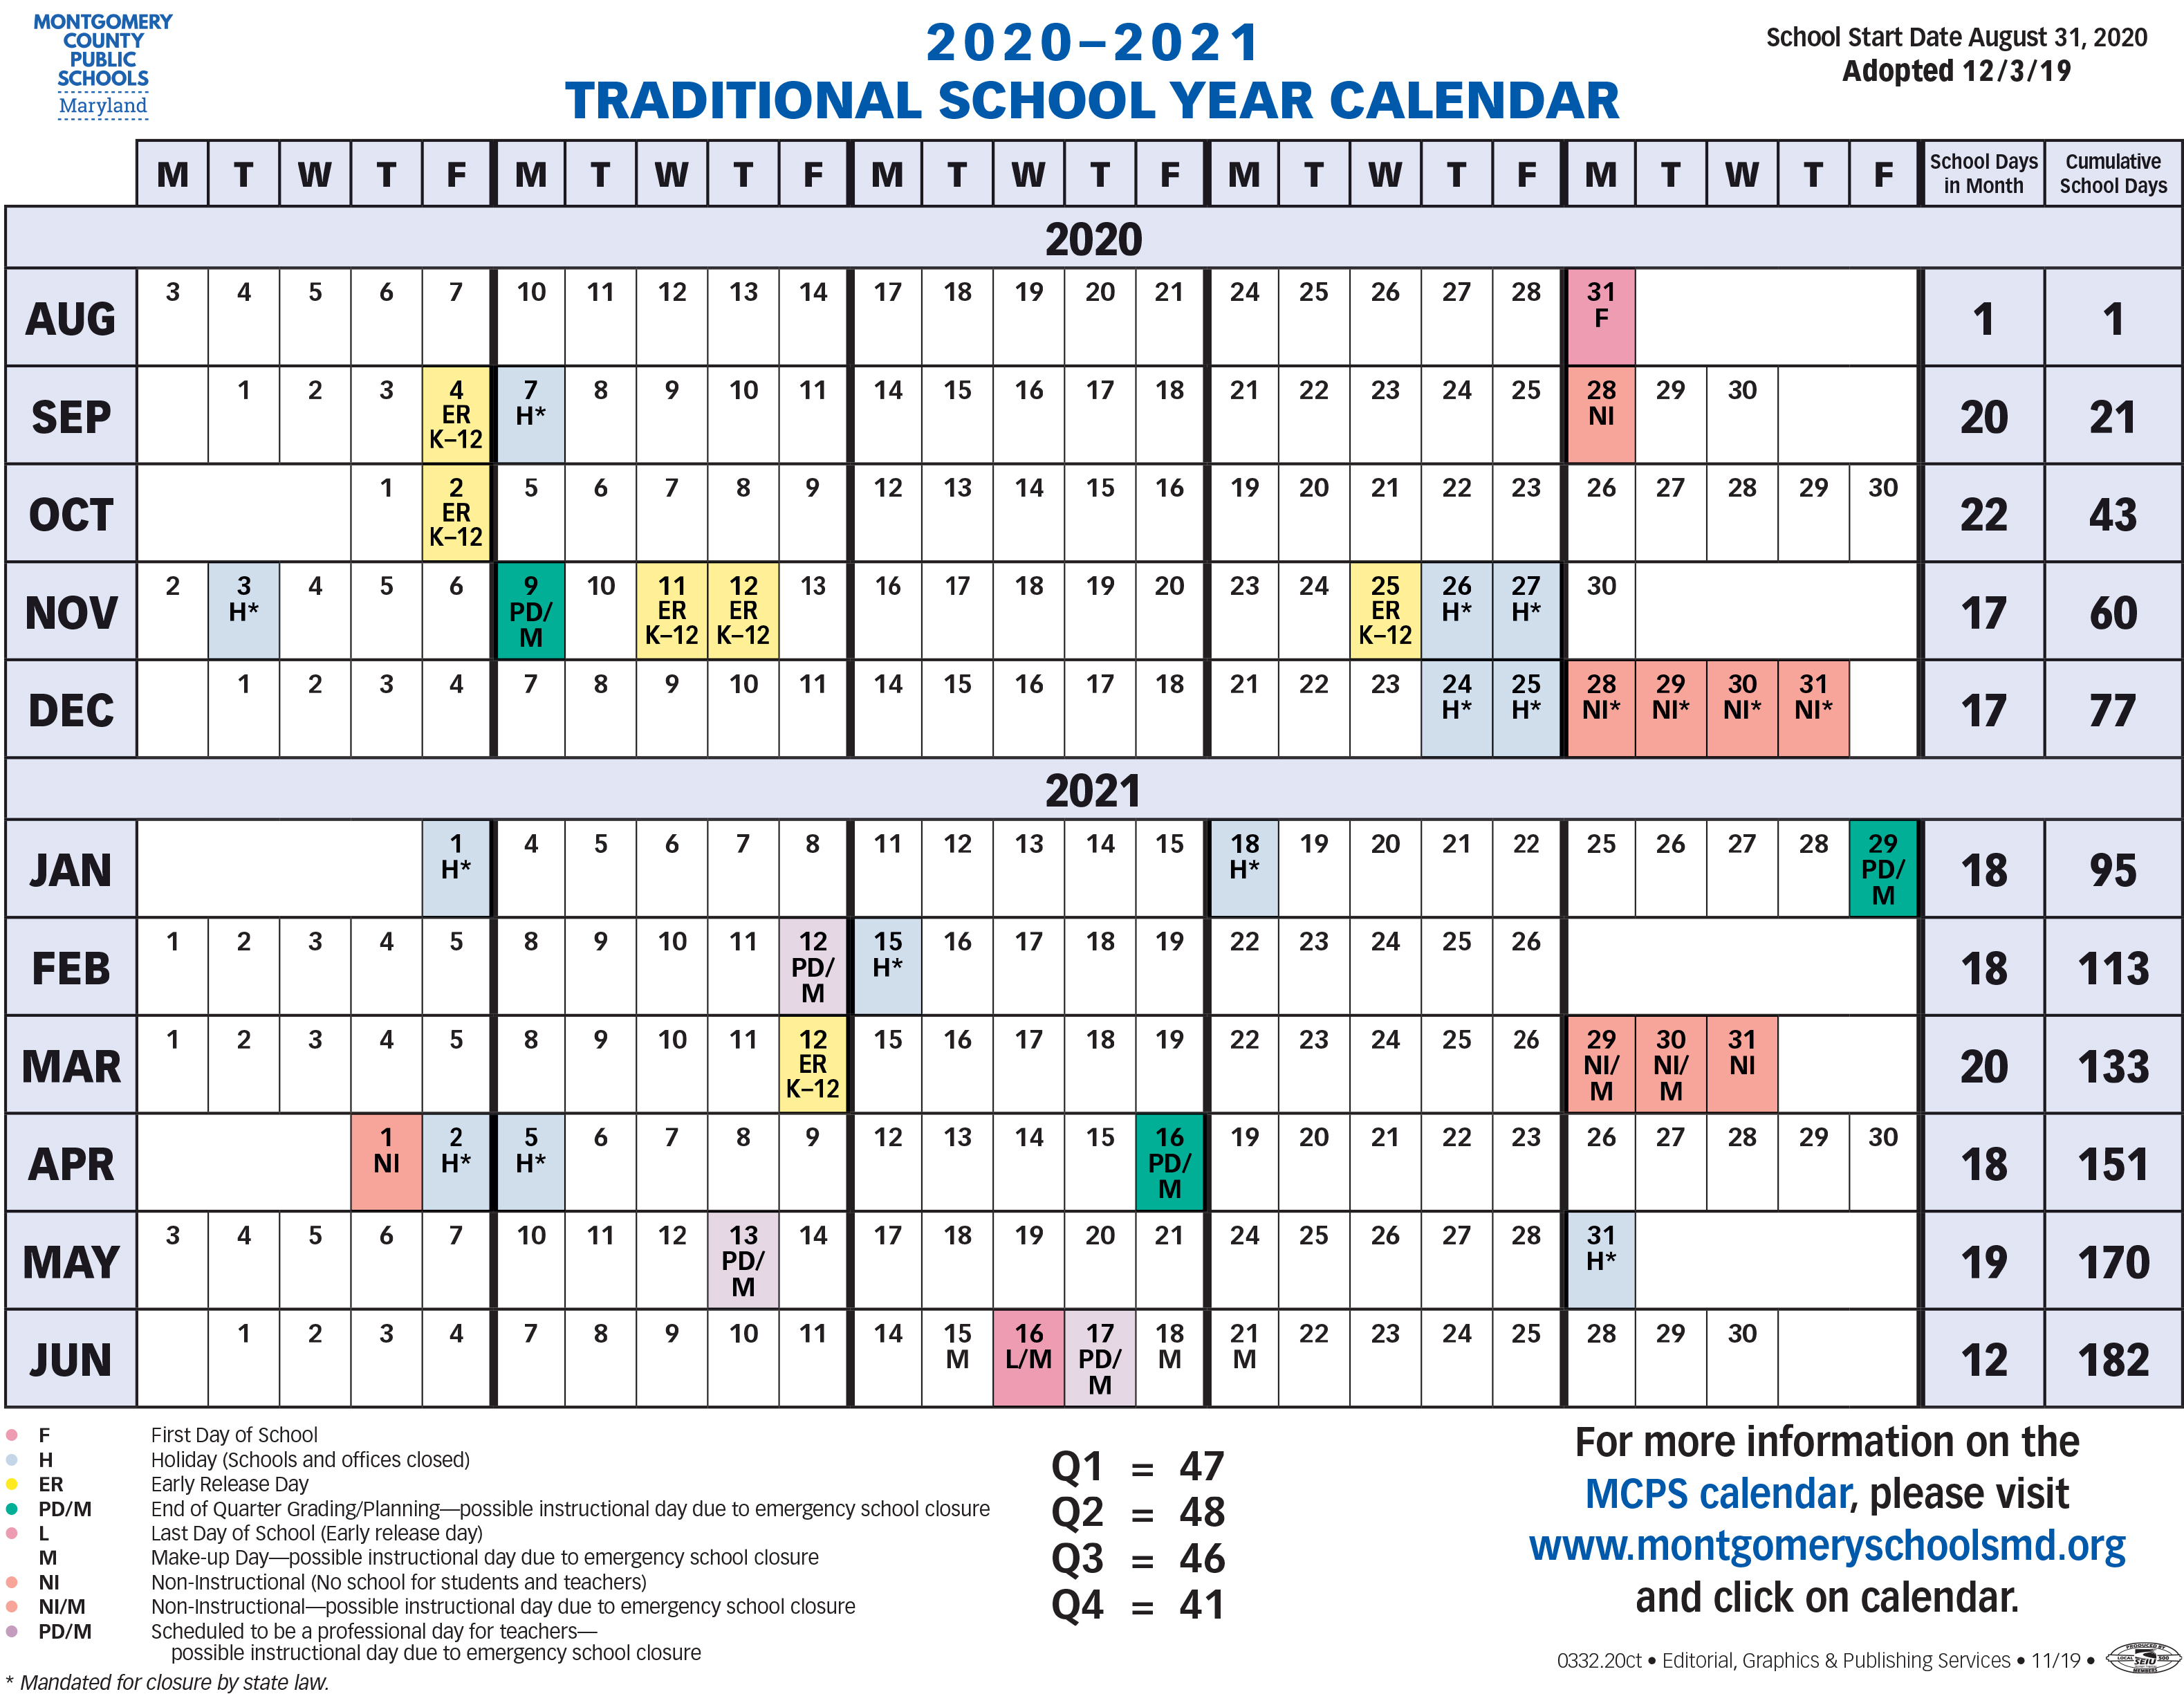 Adopted FY2021 Traditional Calendar